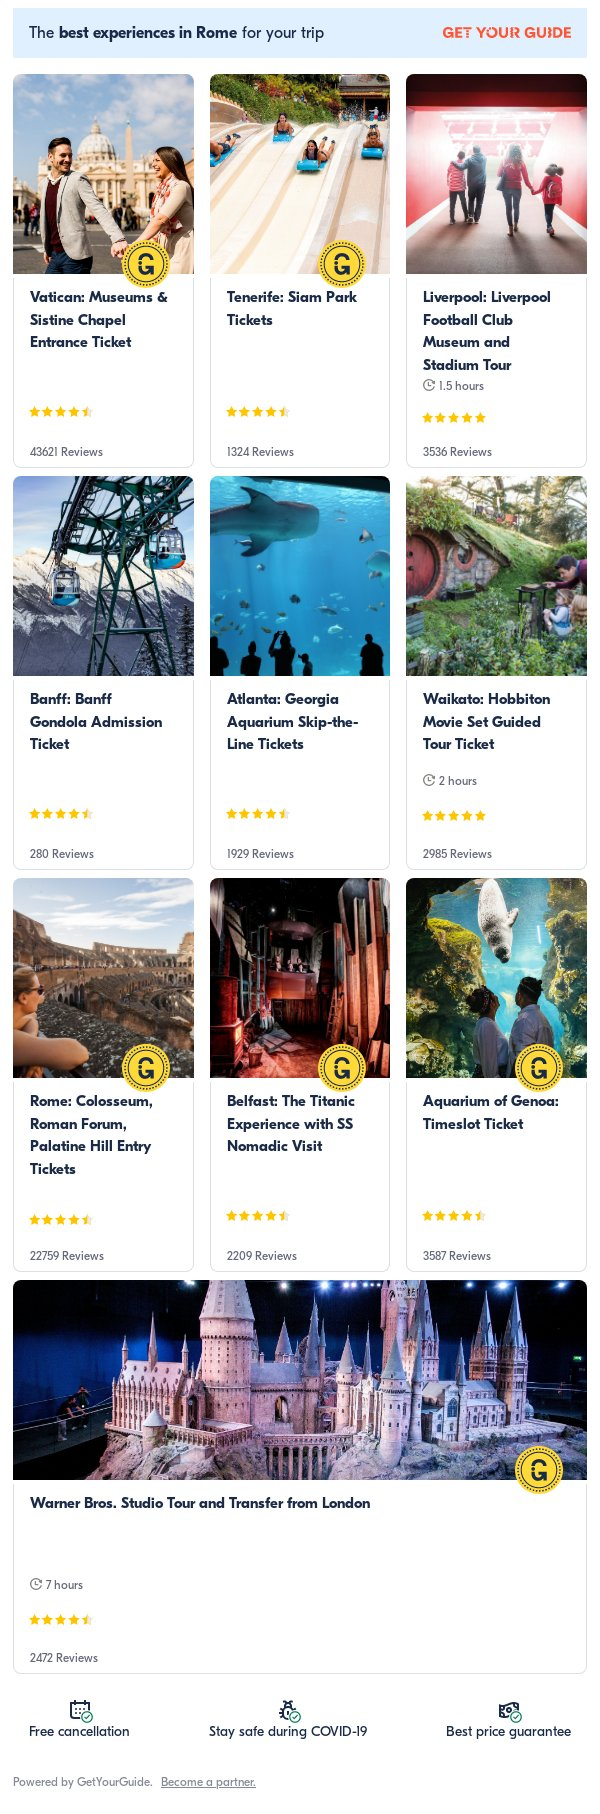 paros: Get Your Guide